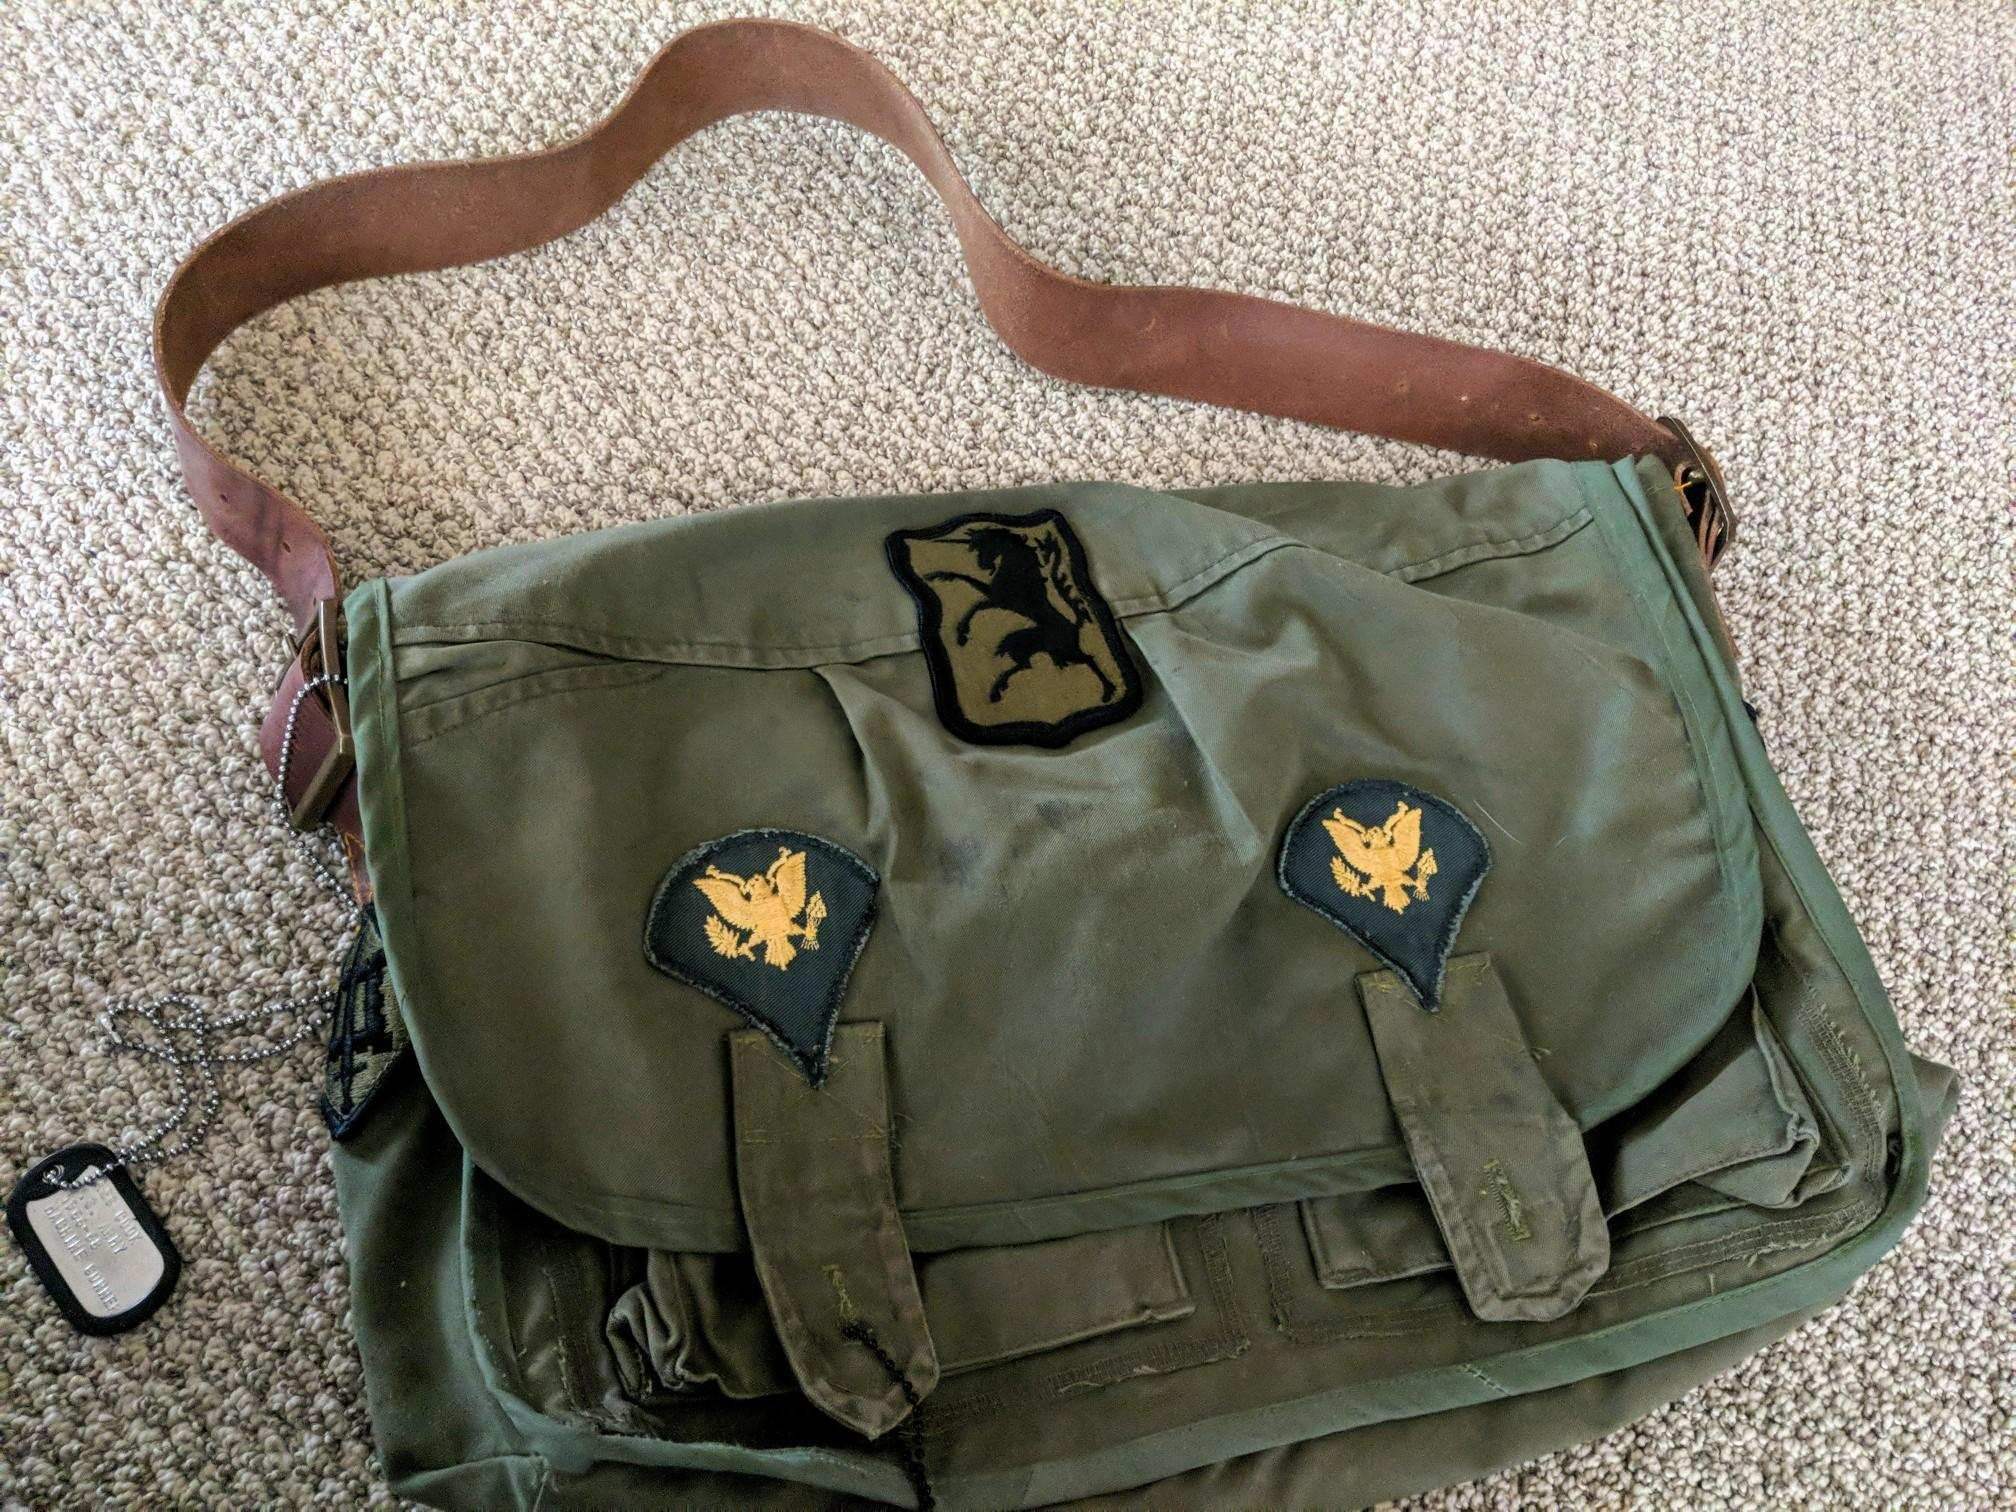 Greggor's patches added to the bag